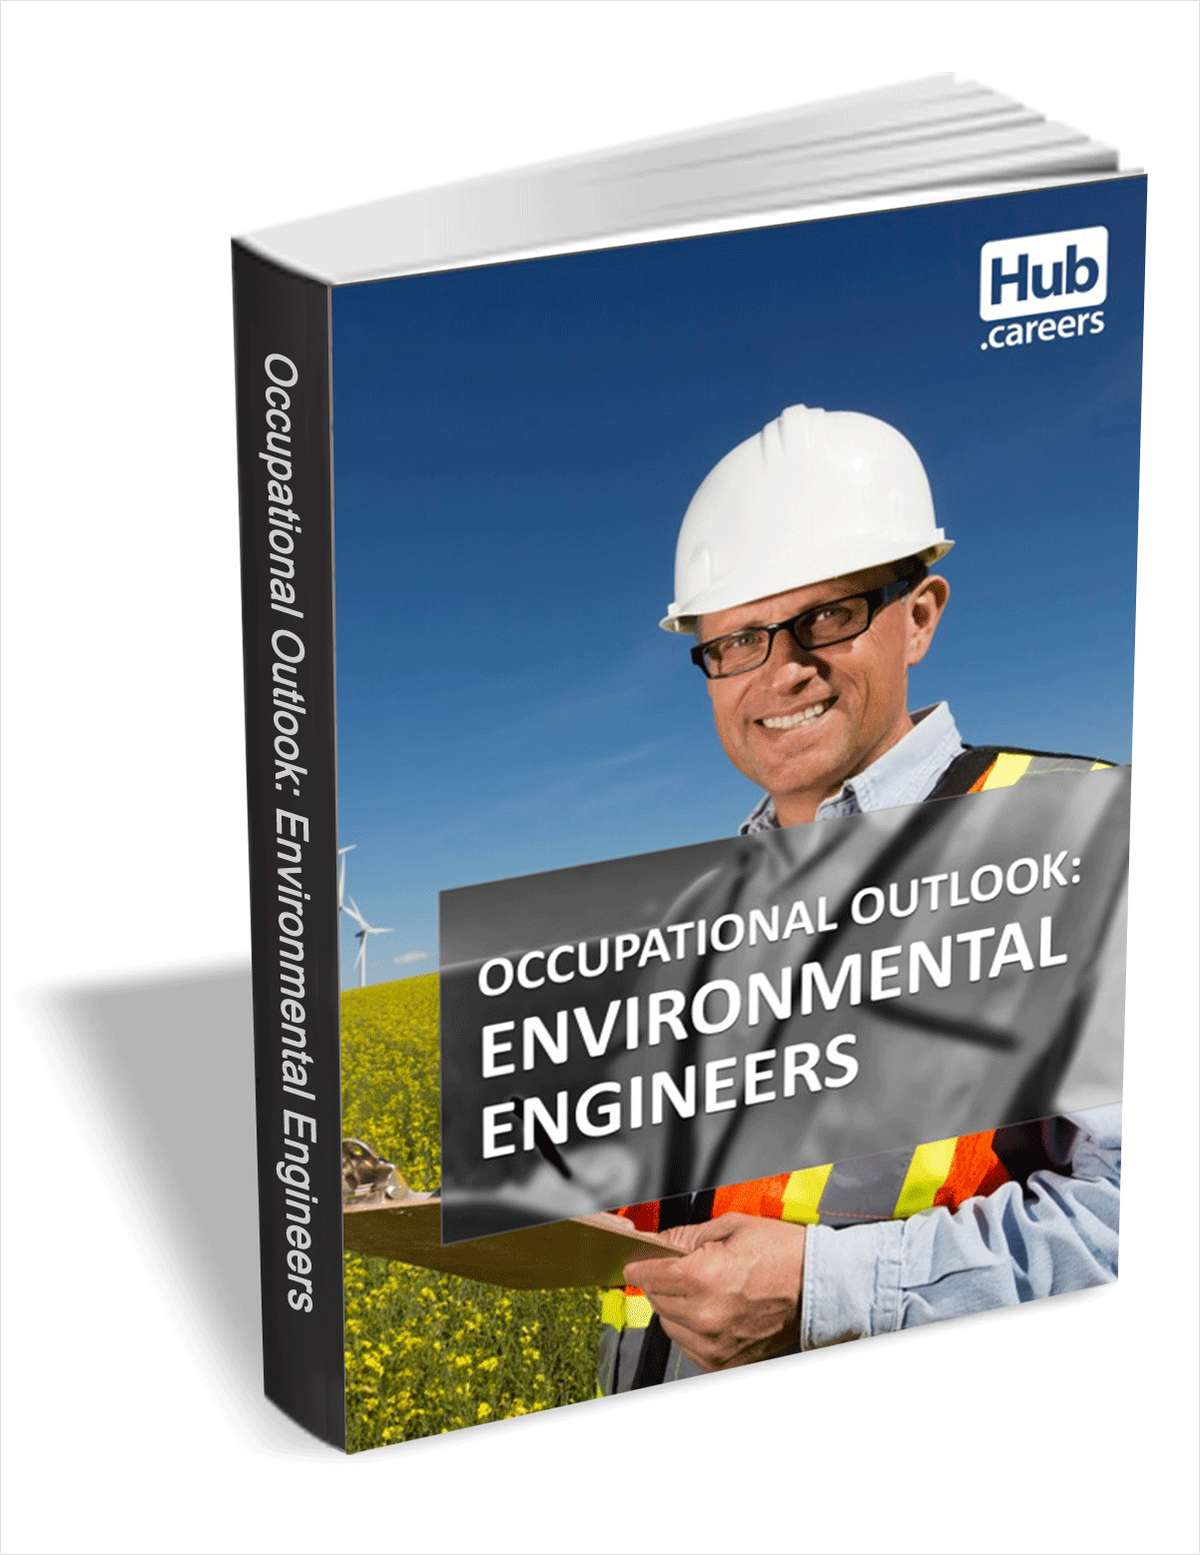 Environmental Engineers - Occupational Outlook